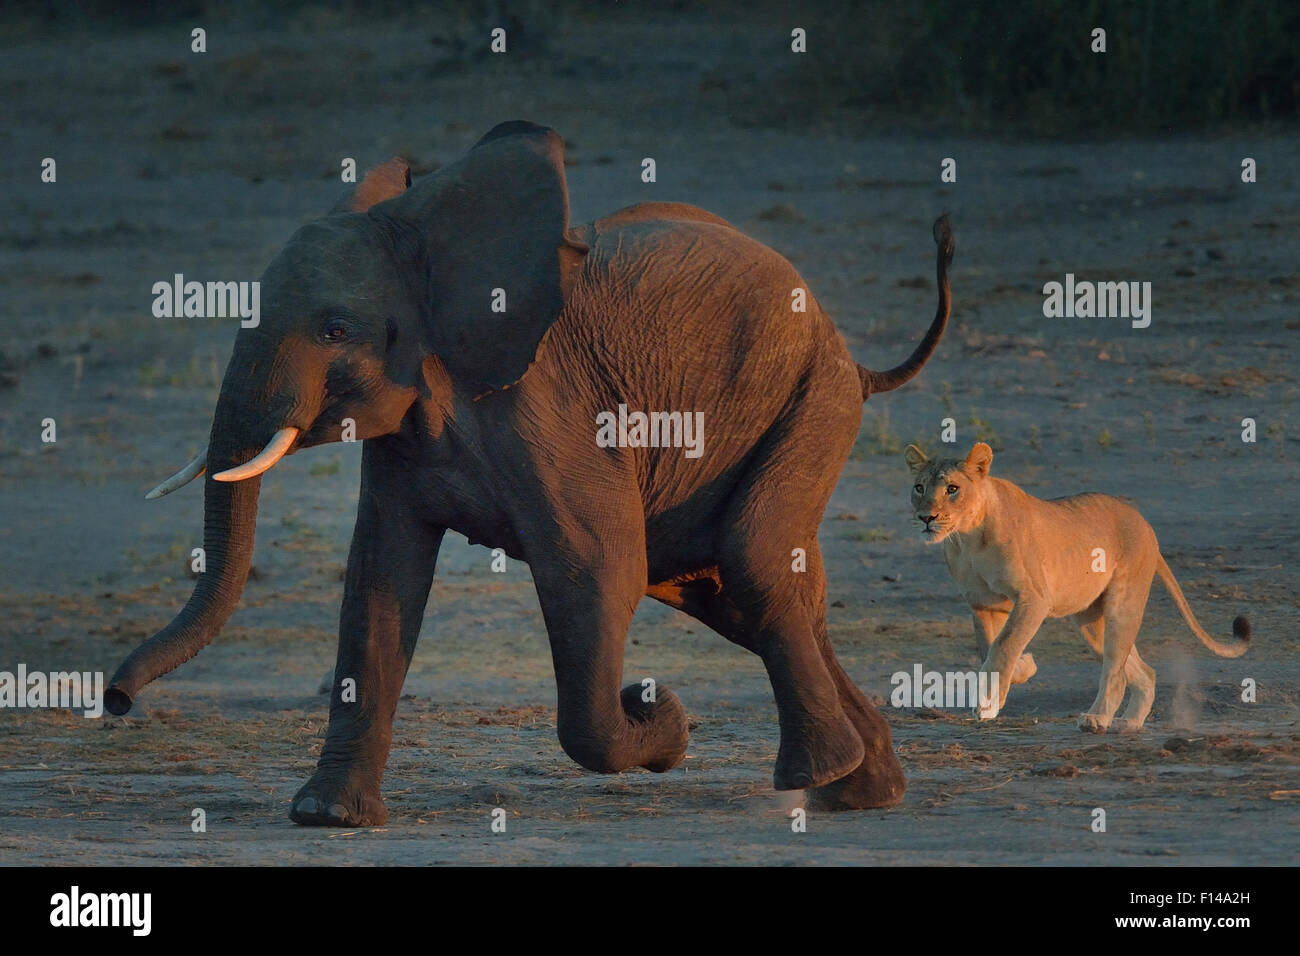 Lioness (Panthera leo) chasing young African elephant (Loxodonta africana) bull, Chobe River, Botswana, May, Vulnerable - Stock Image